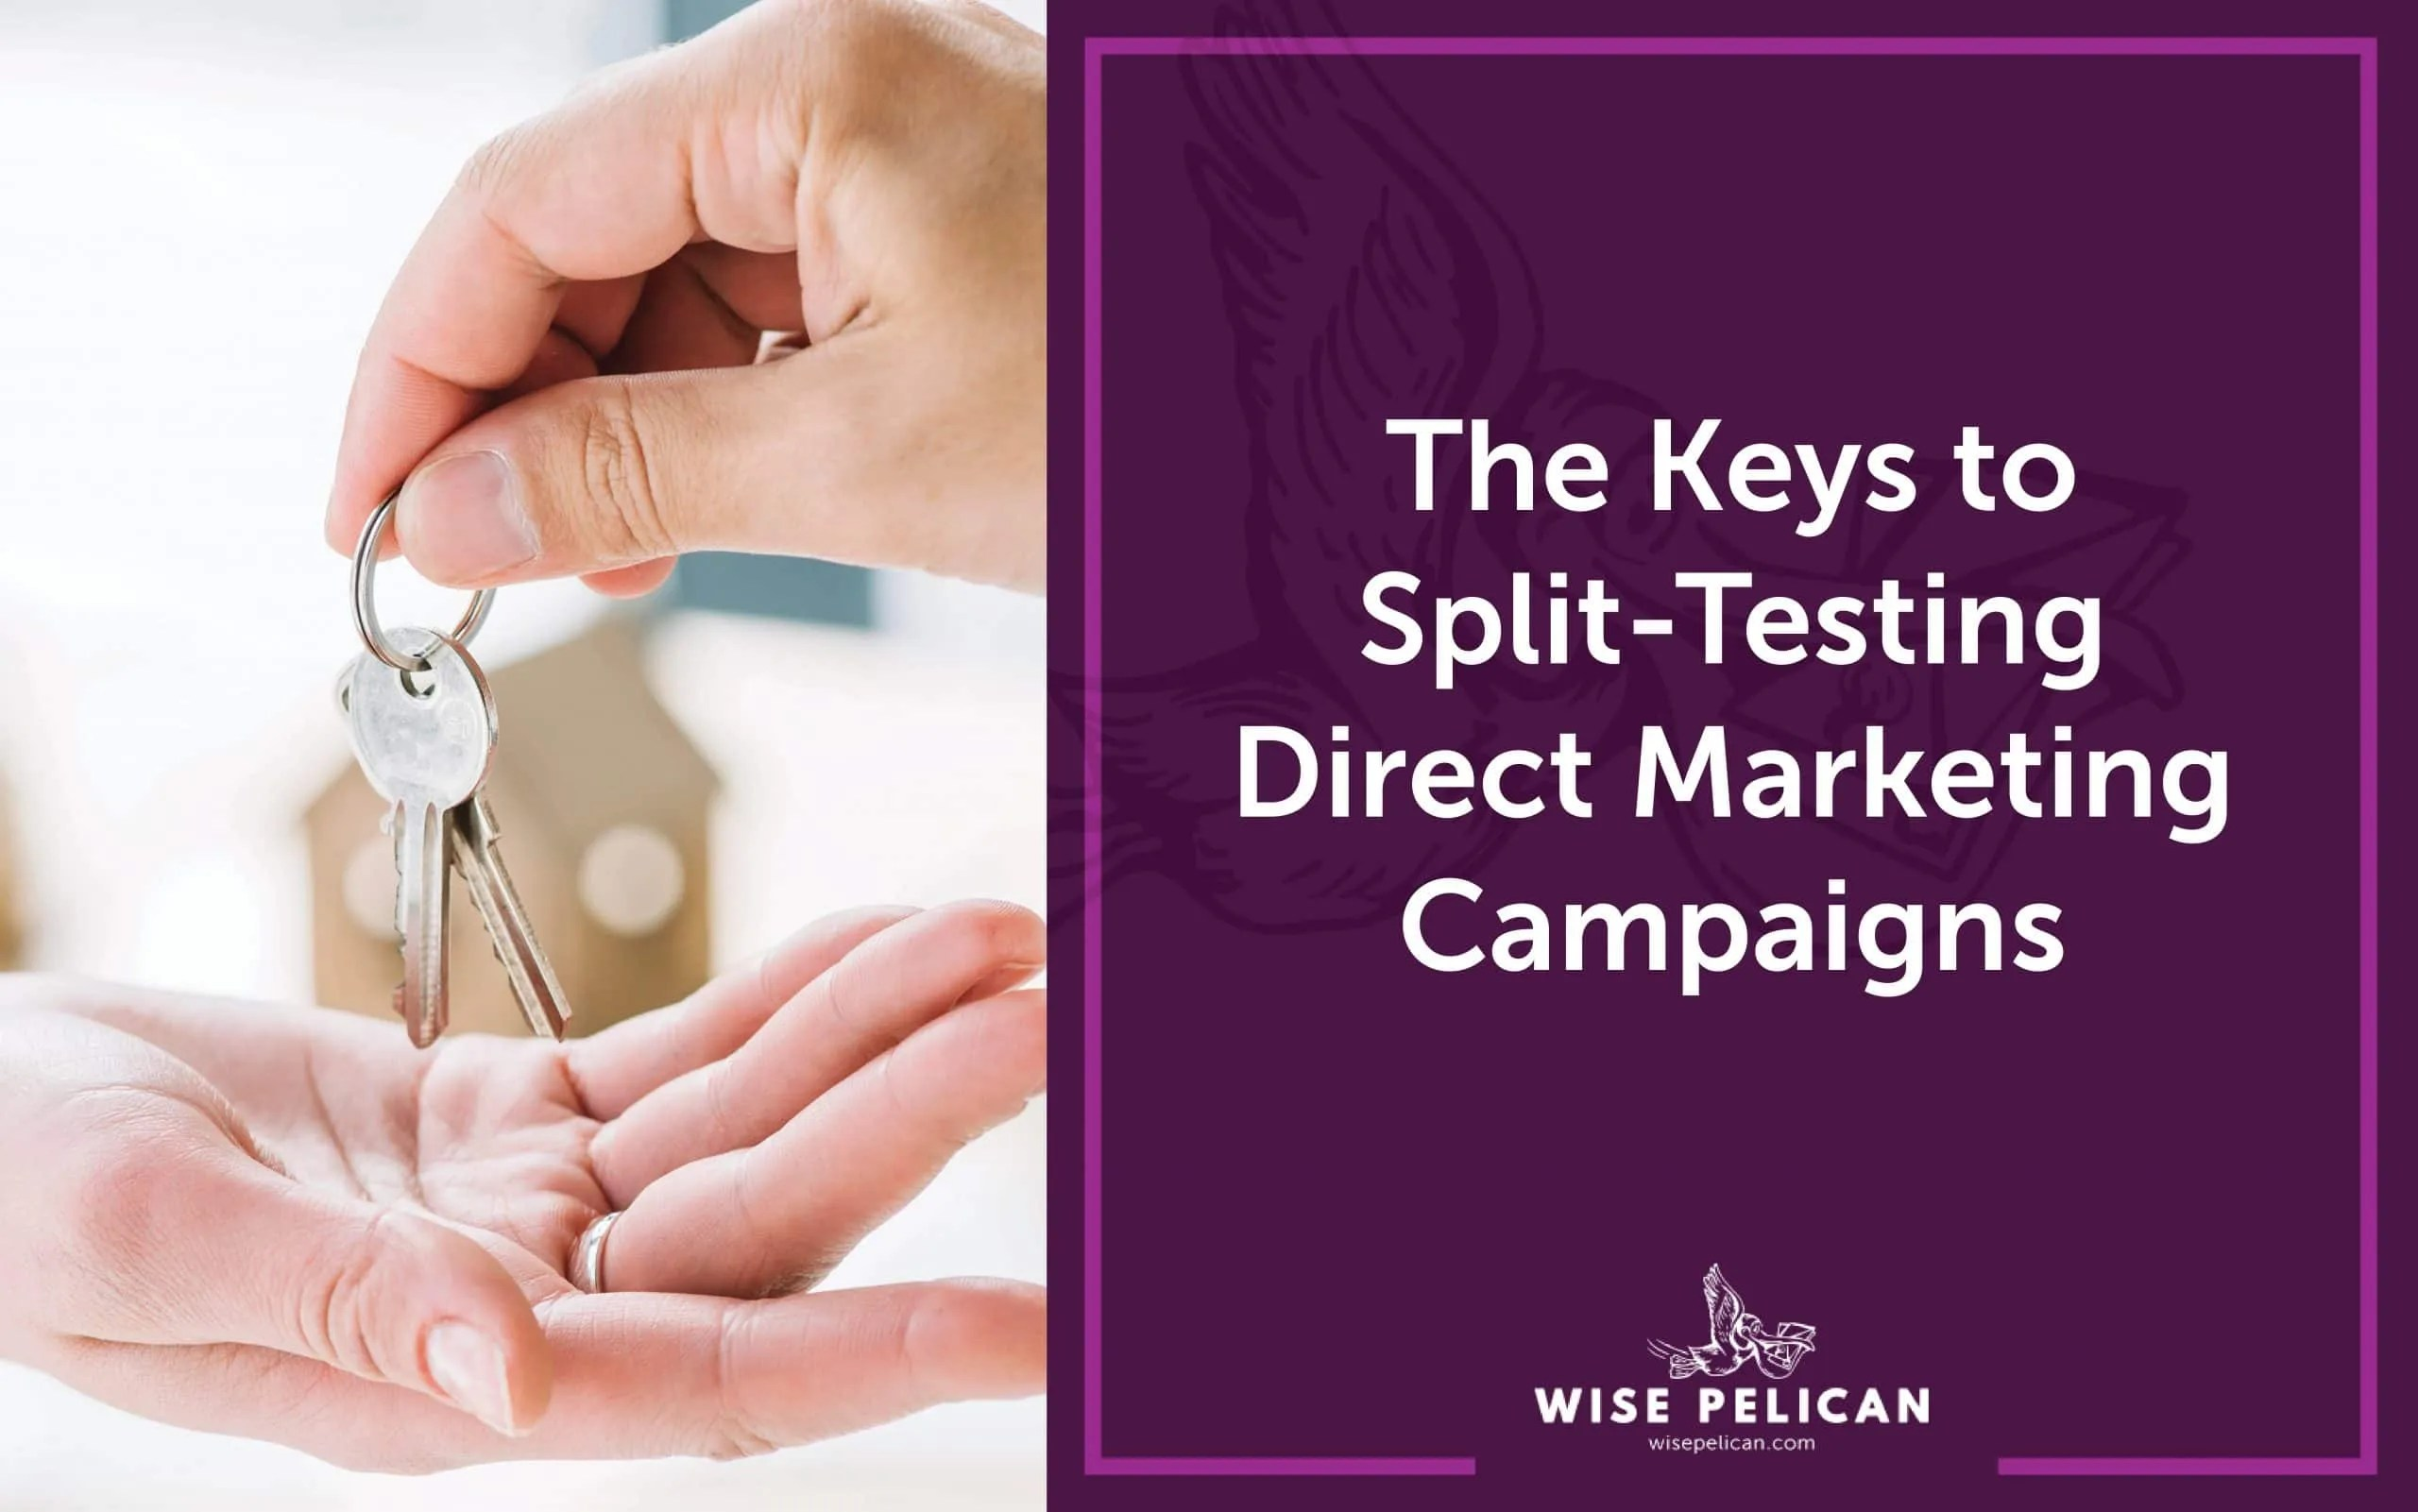 The Keys to Split-Testing Direct Marketing Campaigns